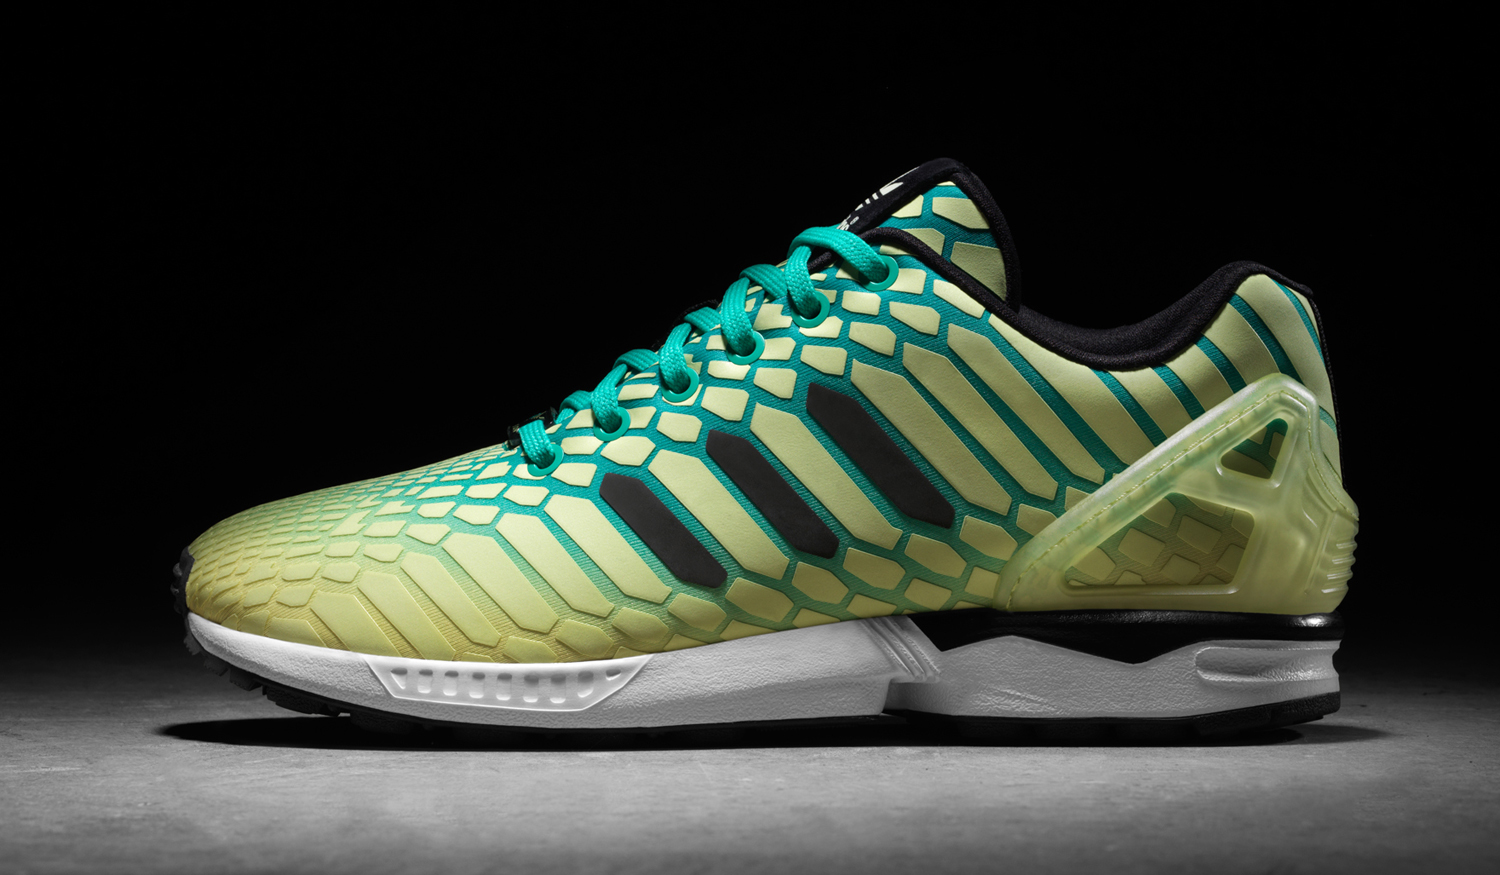 Adidas Lights Up All Star Weekend With Glow in the Dark